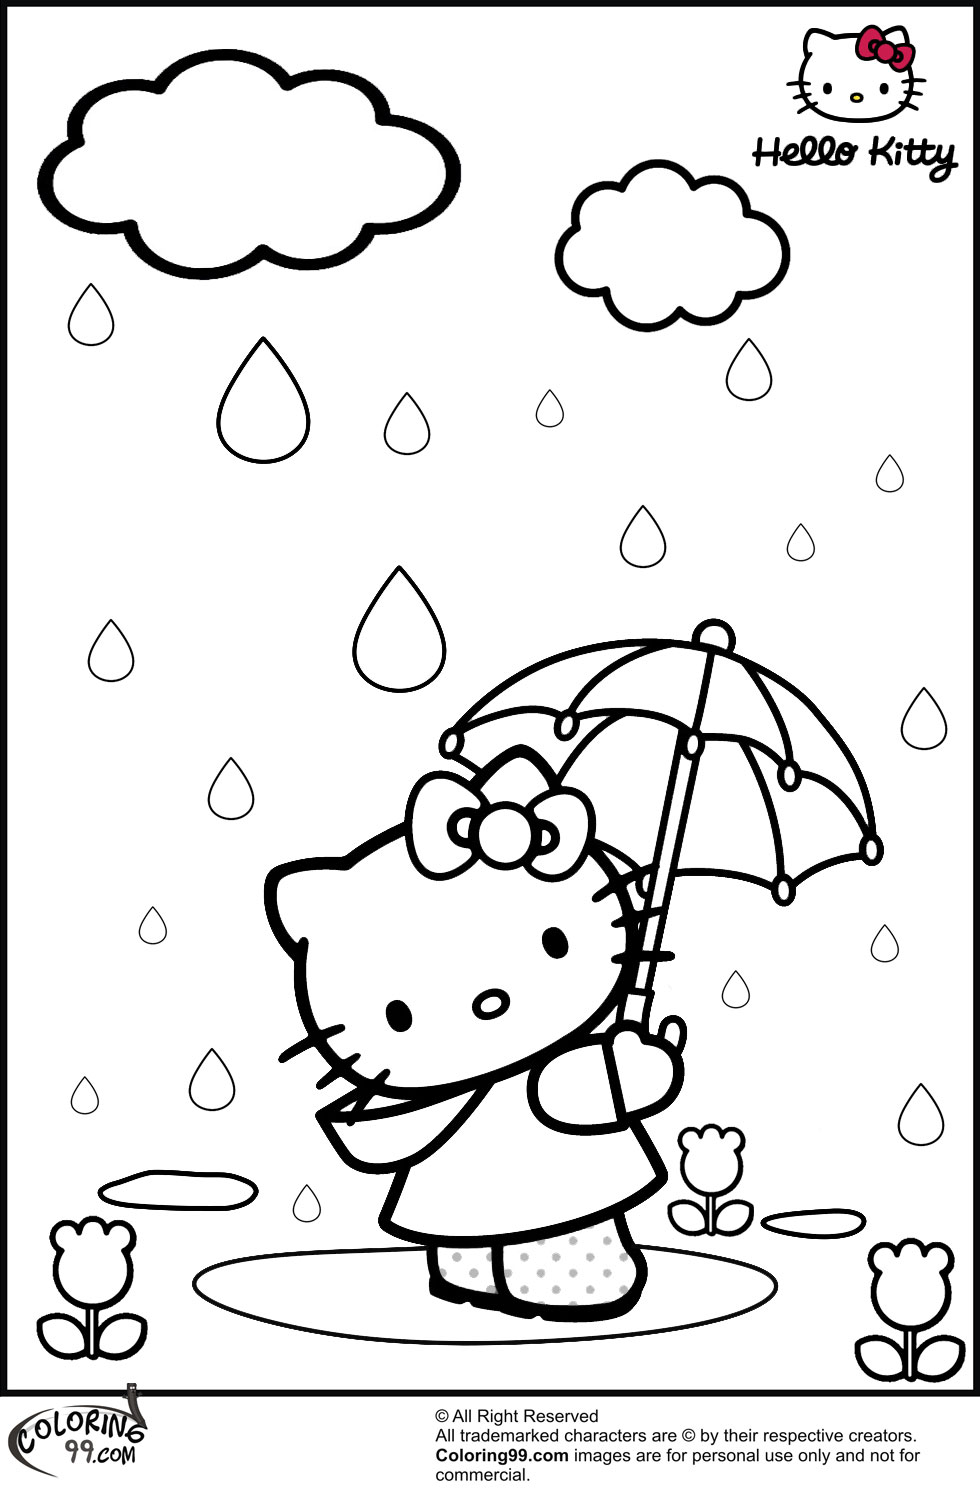 Hello Kitty Zombie Coloring Pages : Zombie hello kitty coloring pages